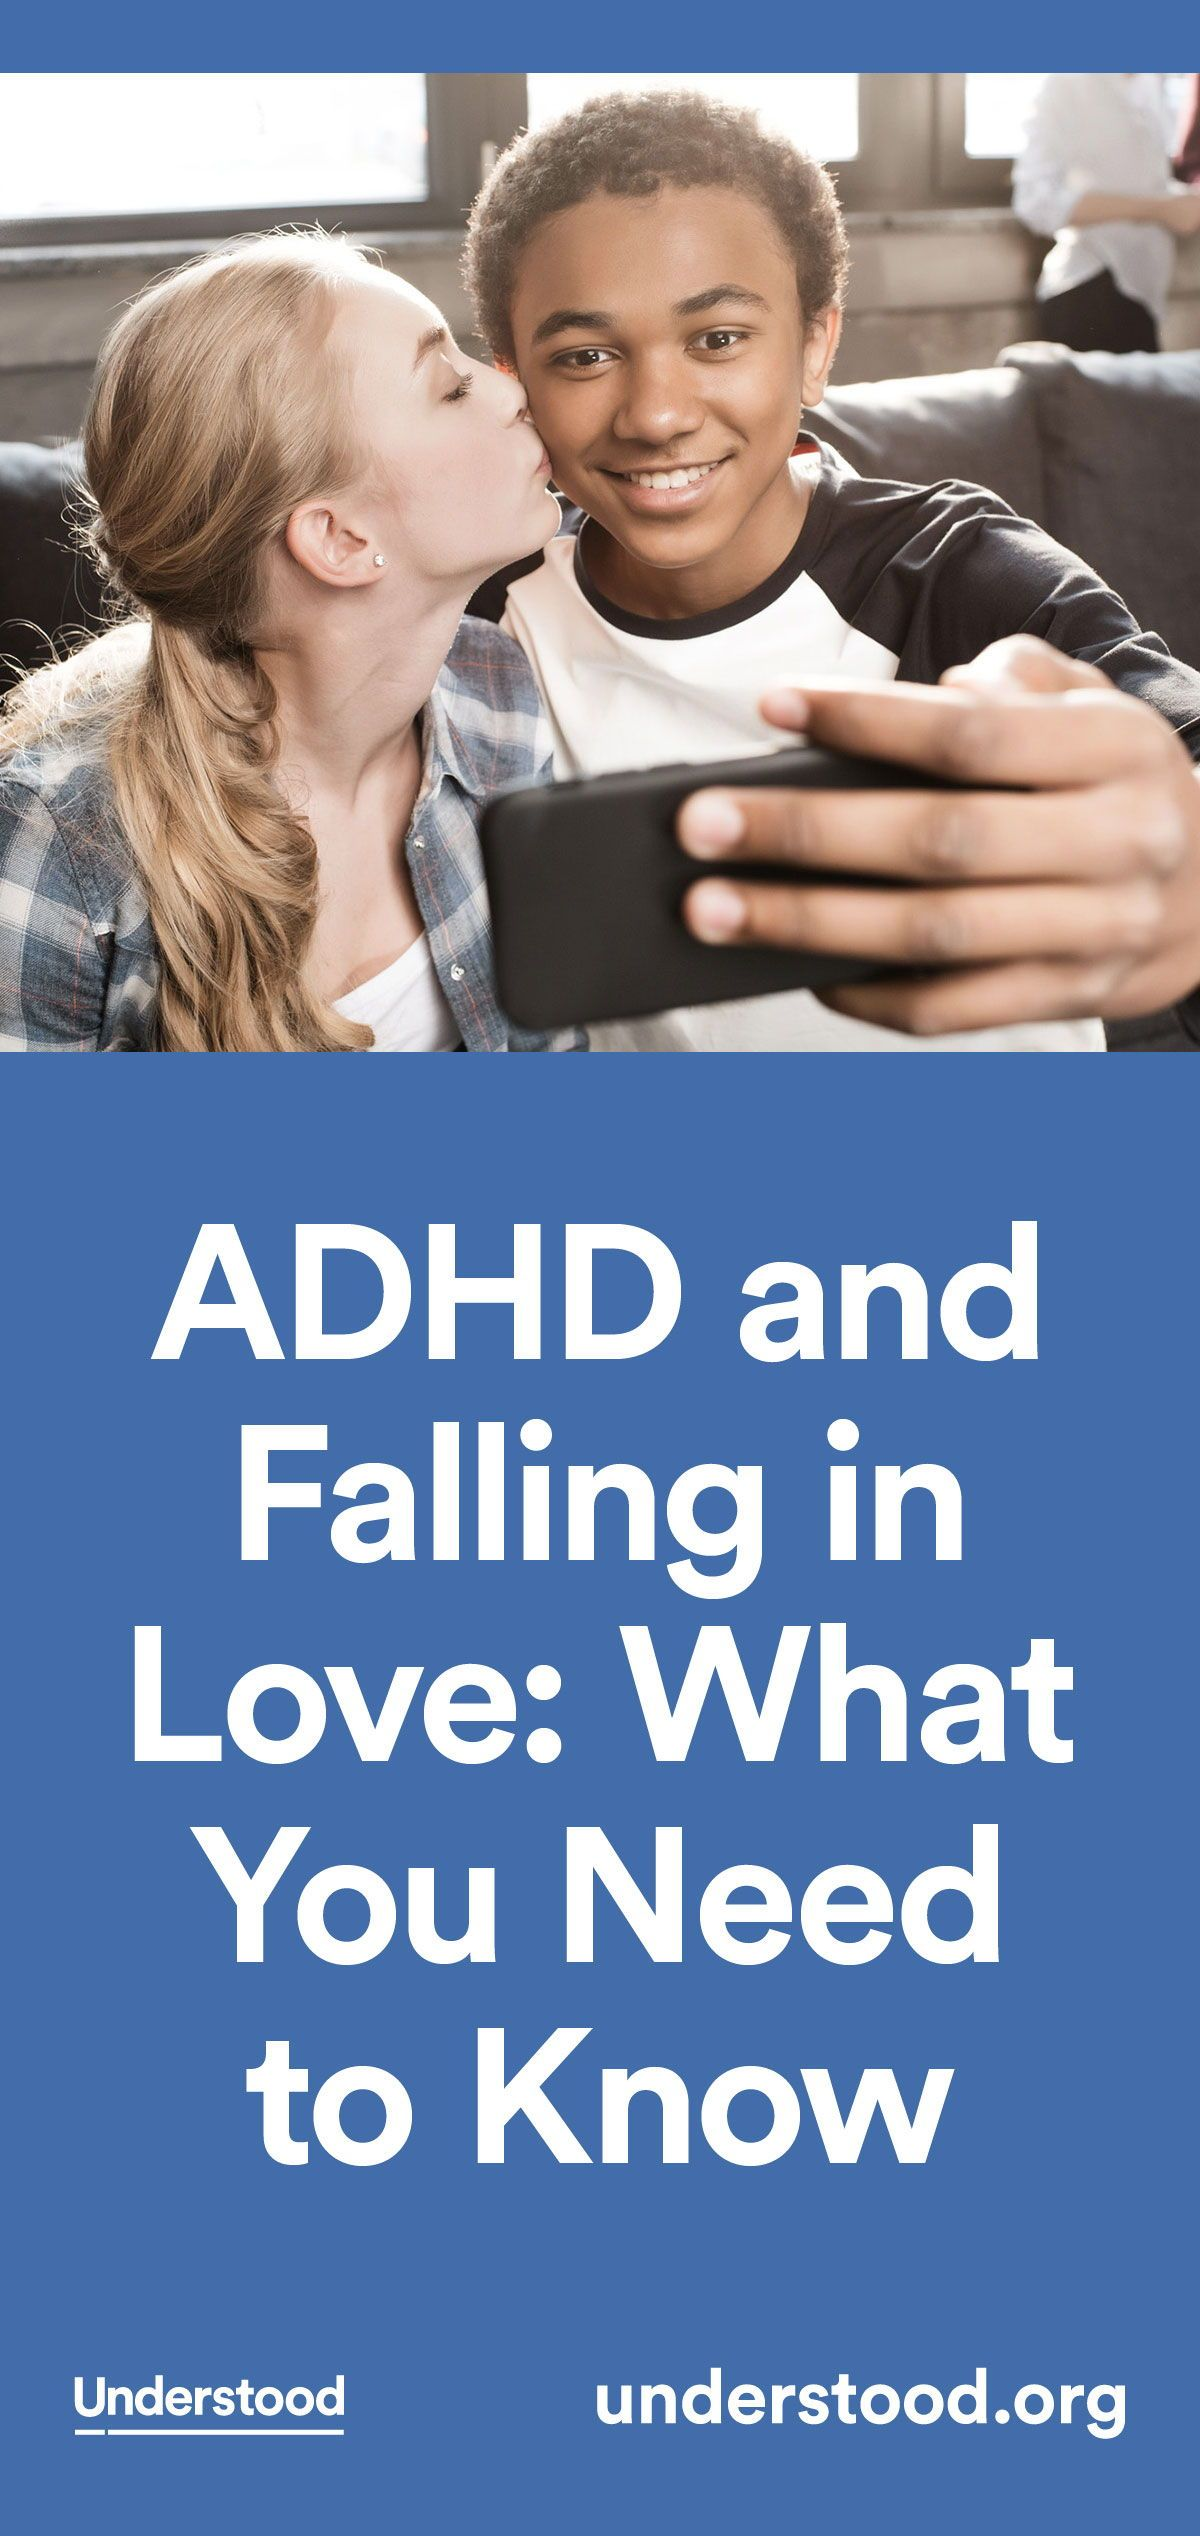 images Have Passion, Will Focus: Encourage Your ADHD Kids Obsessions